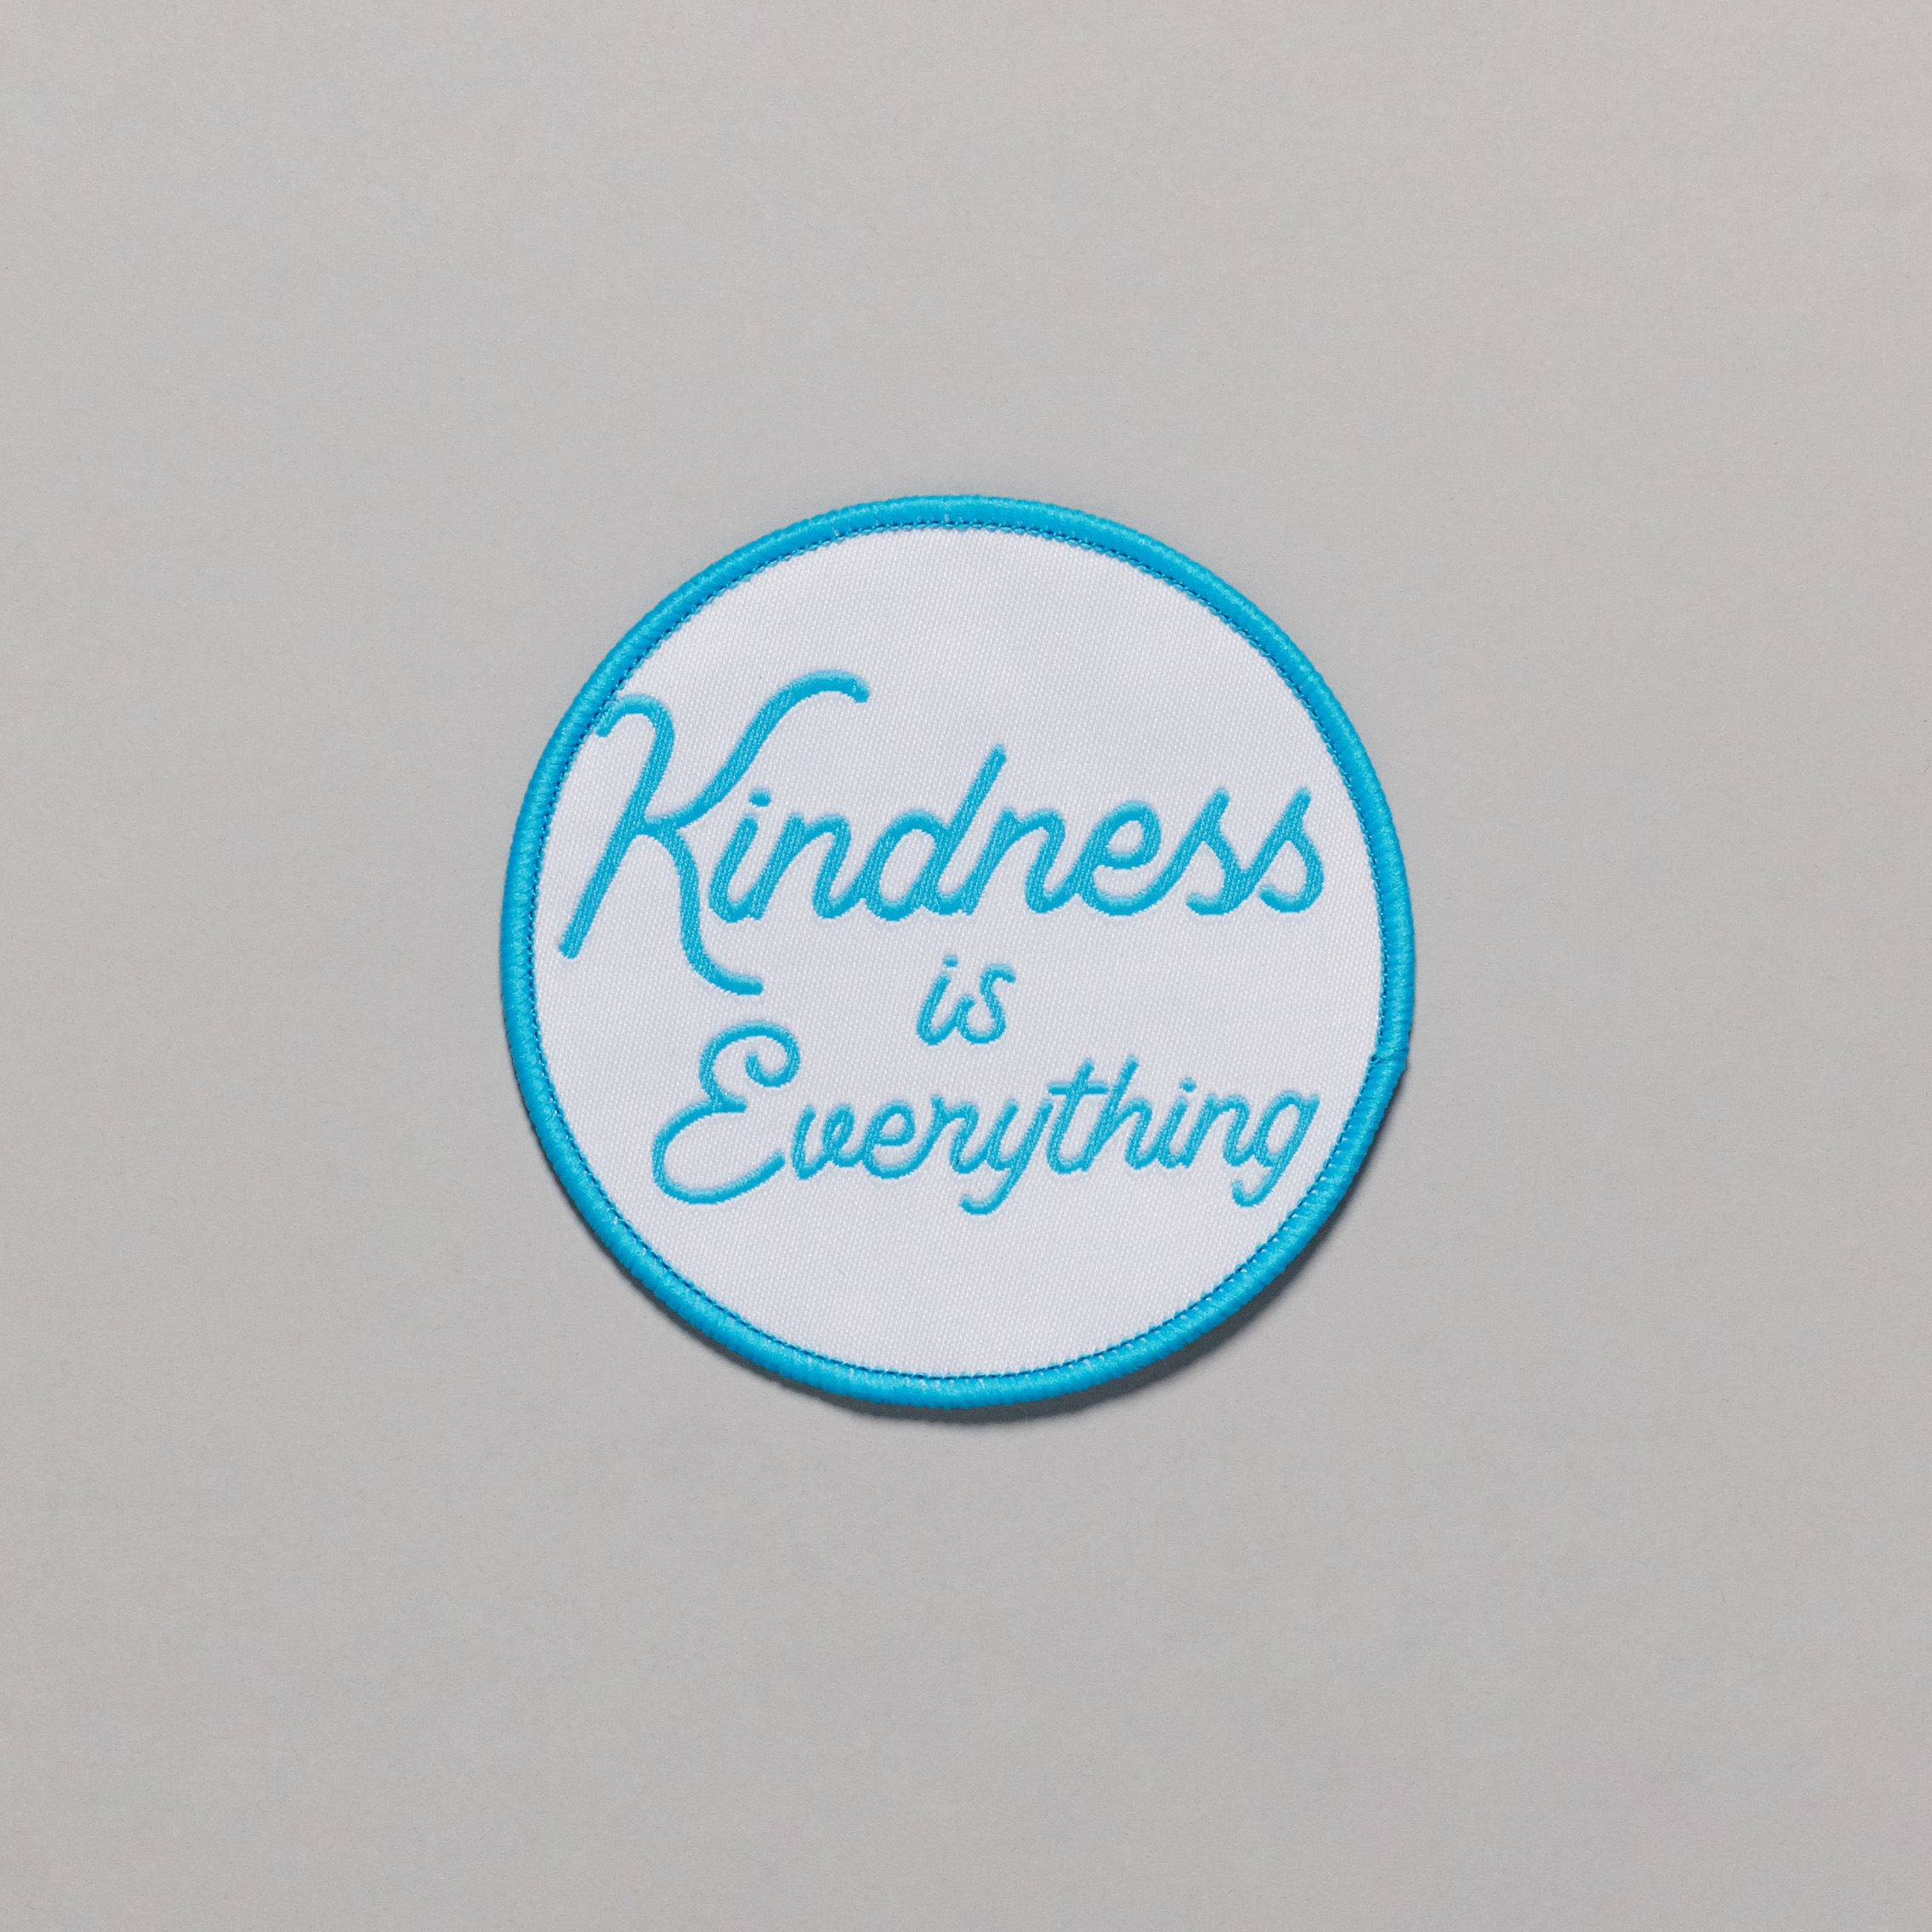 Kindness is Everything Patch